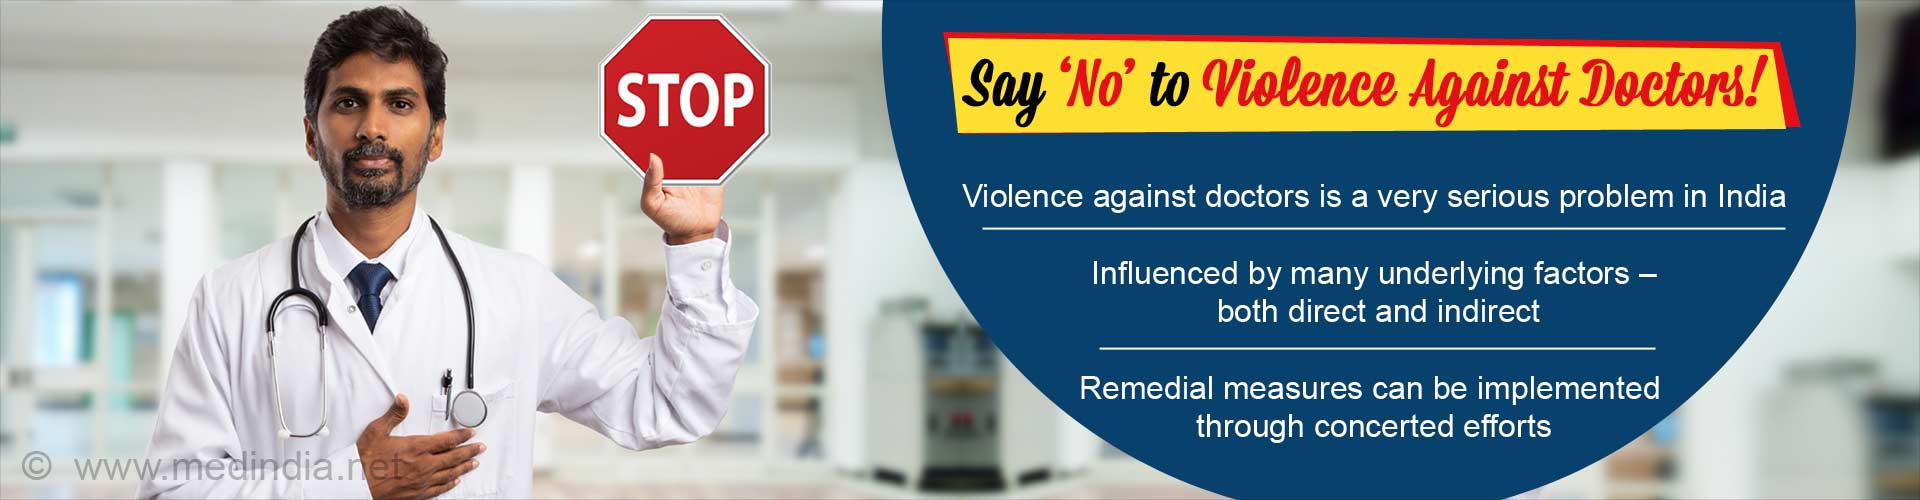 Violence Against Doctors in India: Time to Take Action!